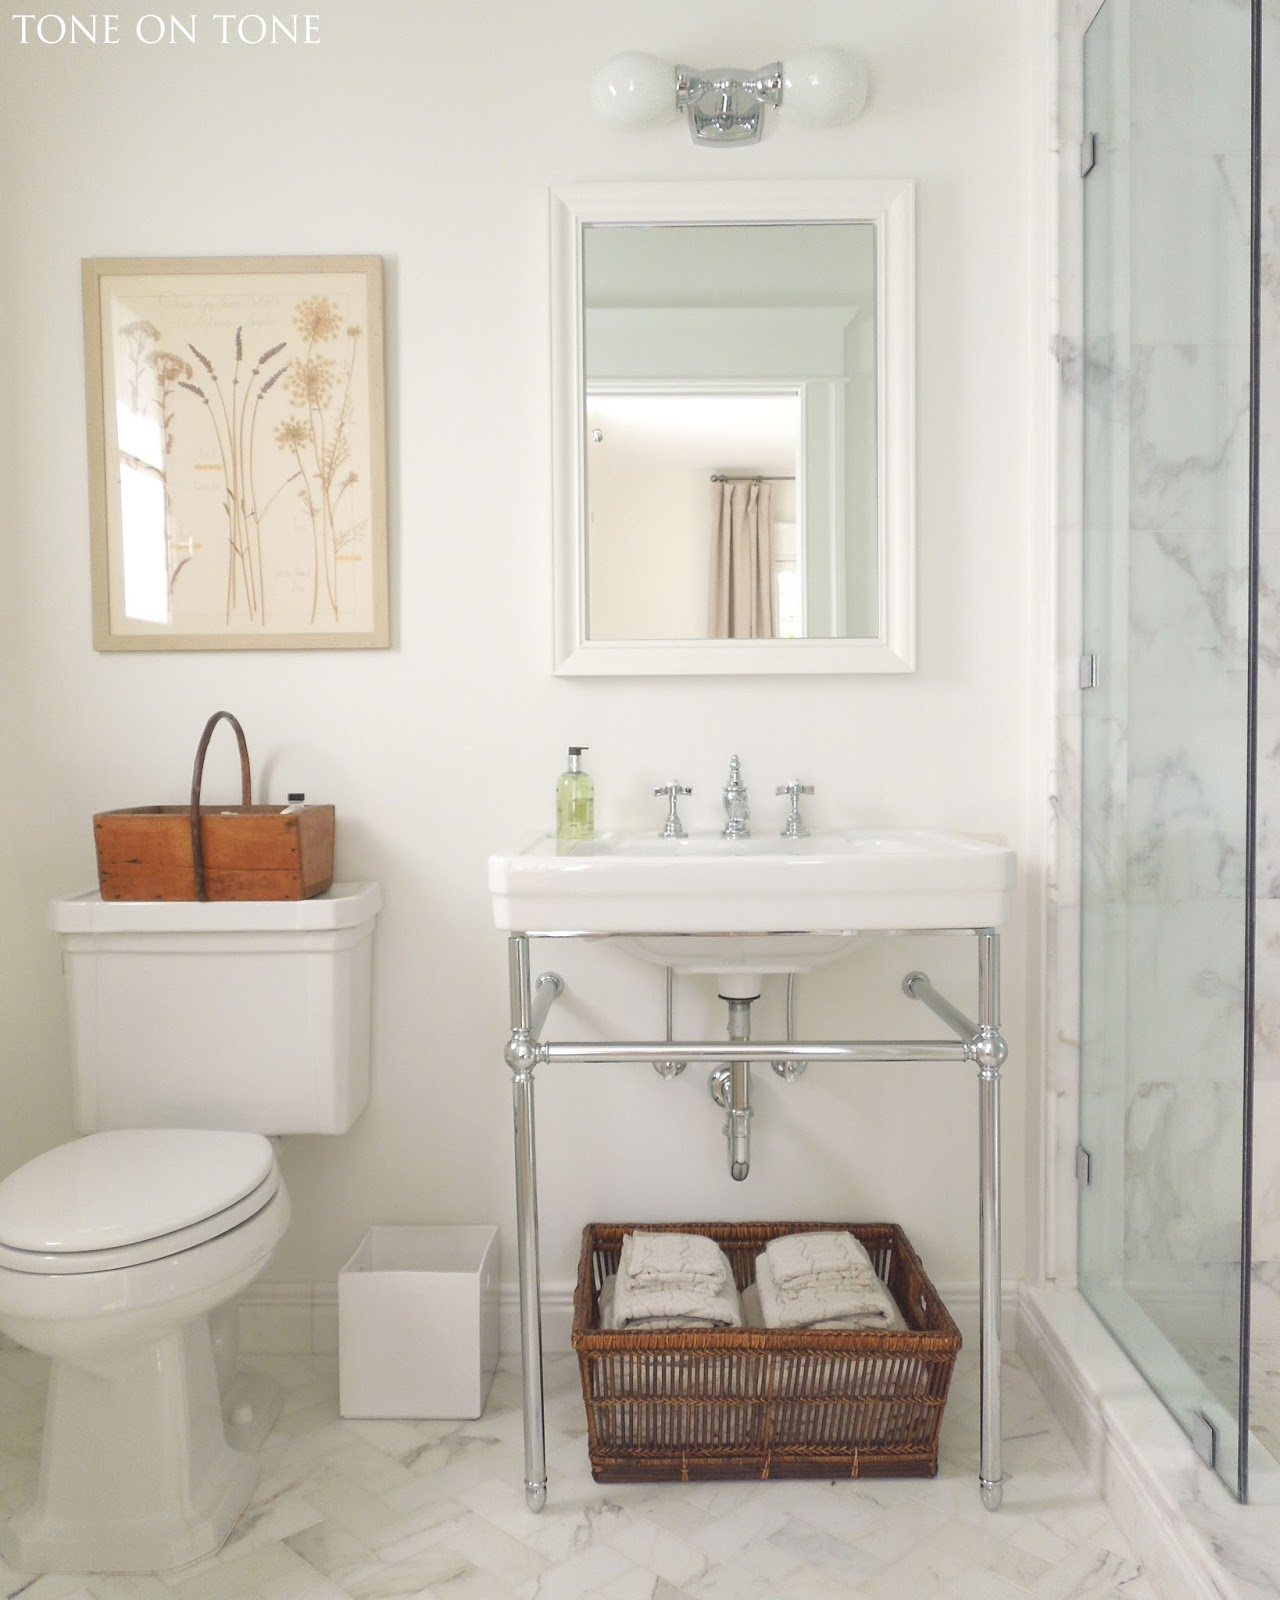 Bathroom Renovation Shows tone on tone: small bathroom renovation